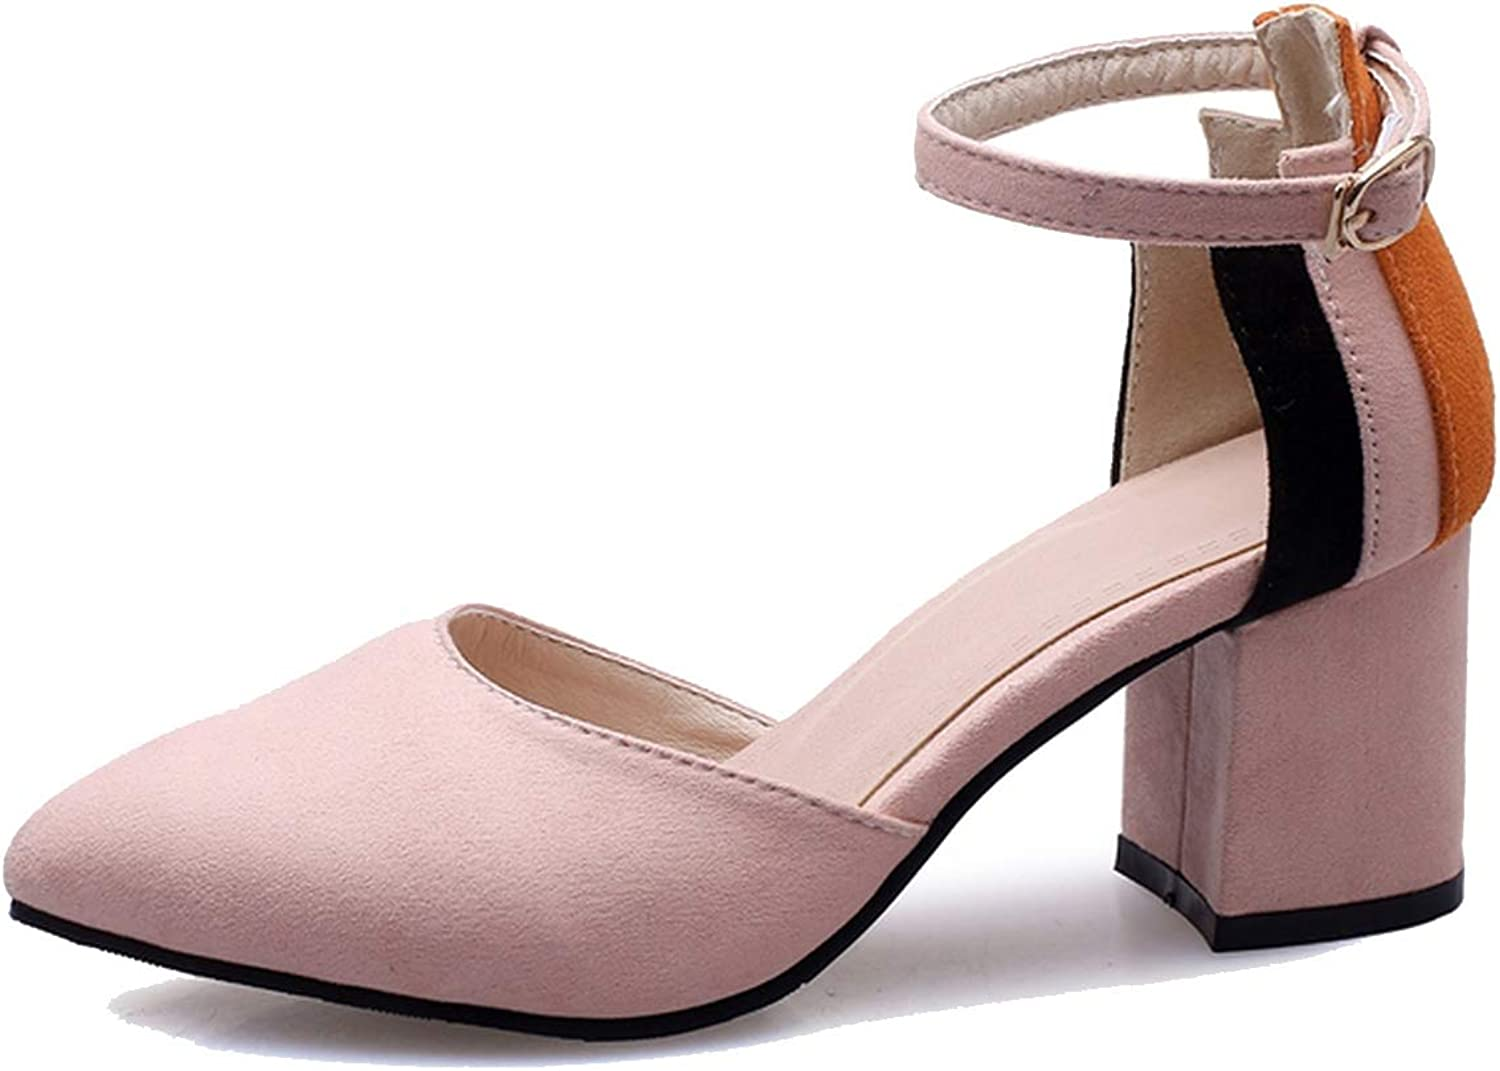 Buckle Strap Women Pumps Pointed Toe Thick high Heels Party Wedding shoes Mixed color Footwear,Pink,14